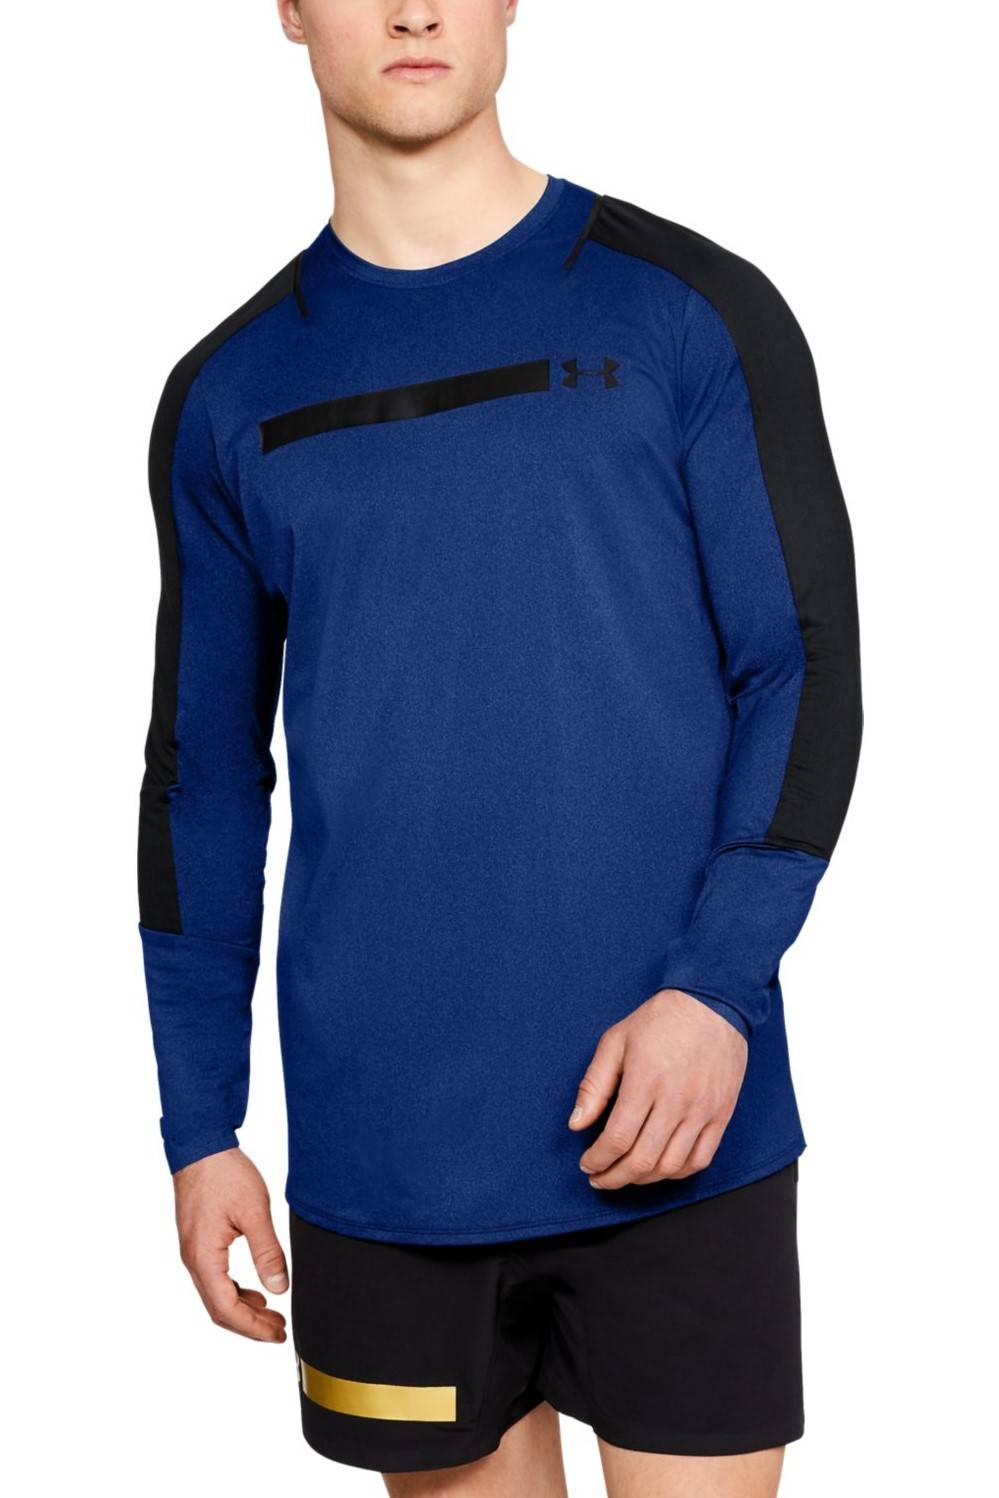 Under Armour T-shirt da uomo Under Armour blu scuro Perpetl Fitted LS